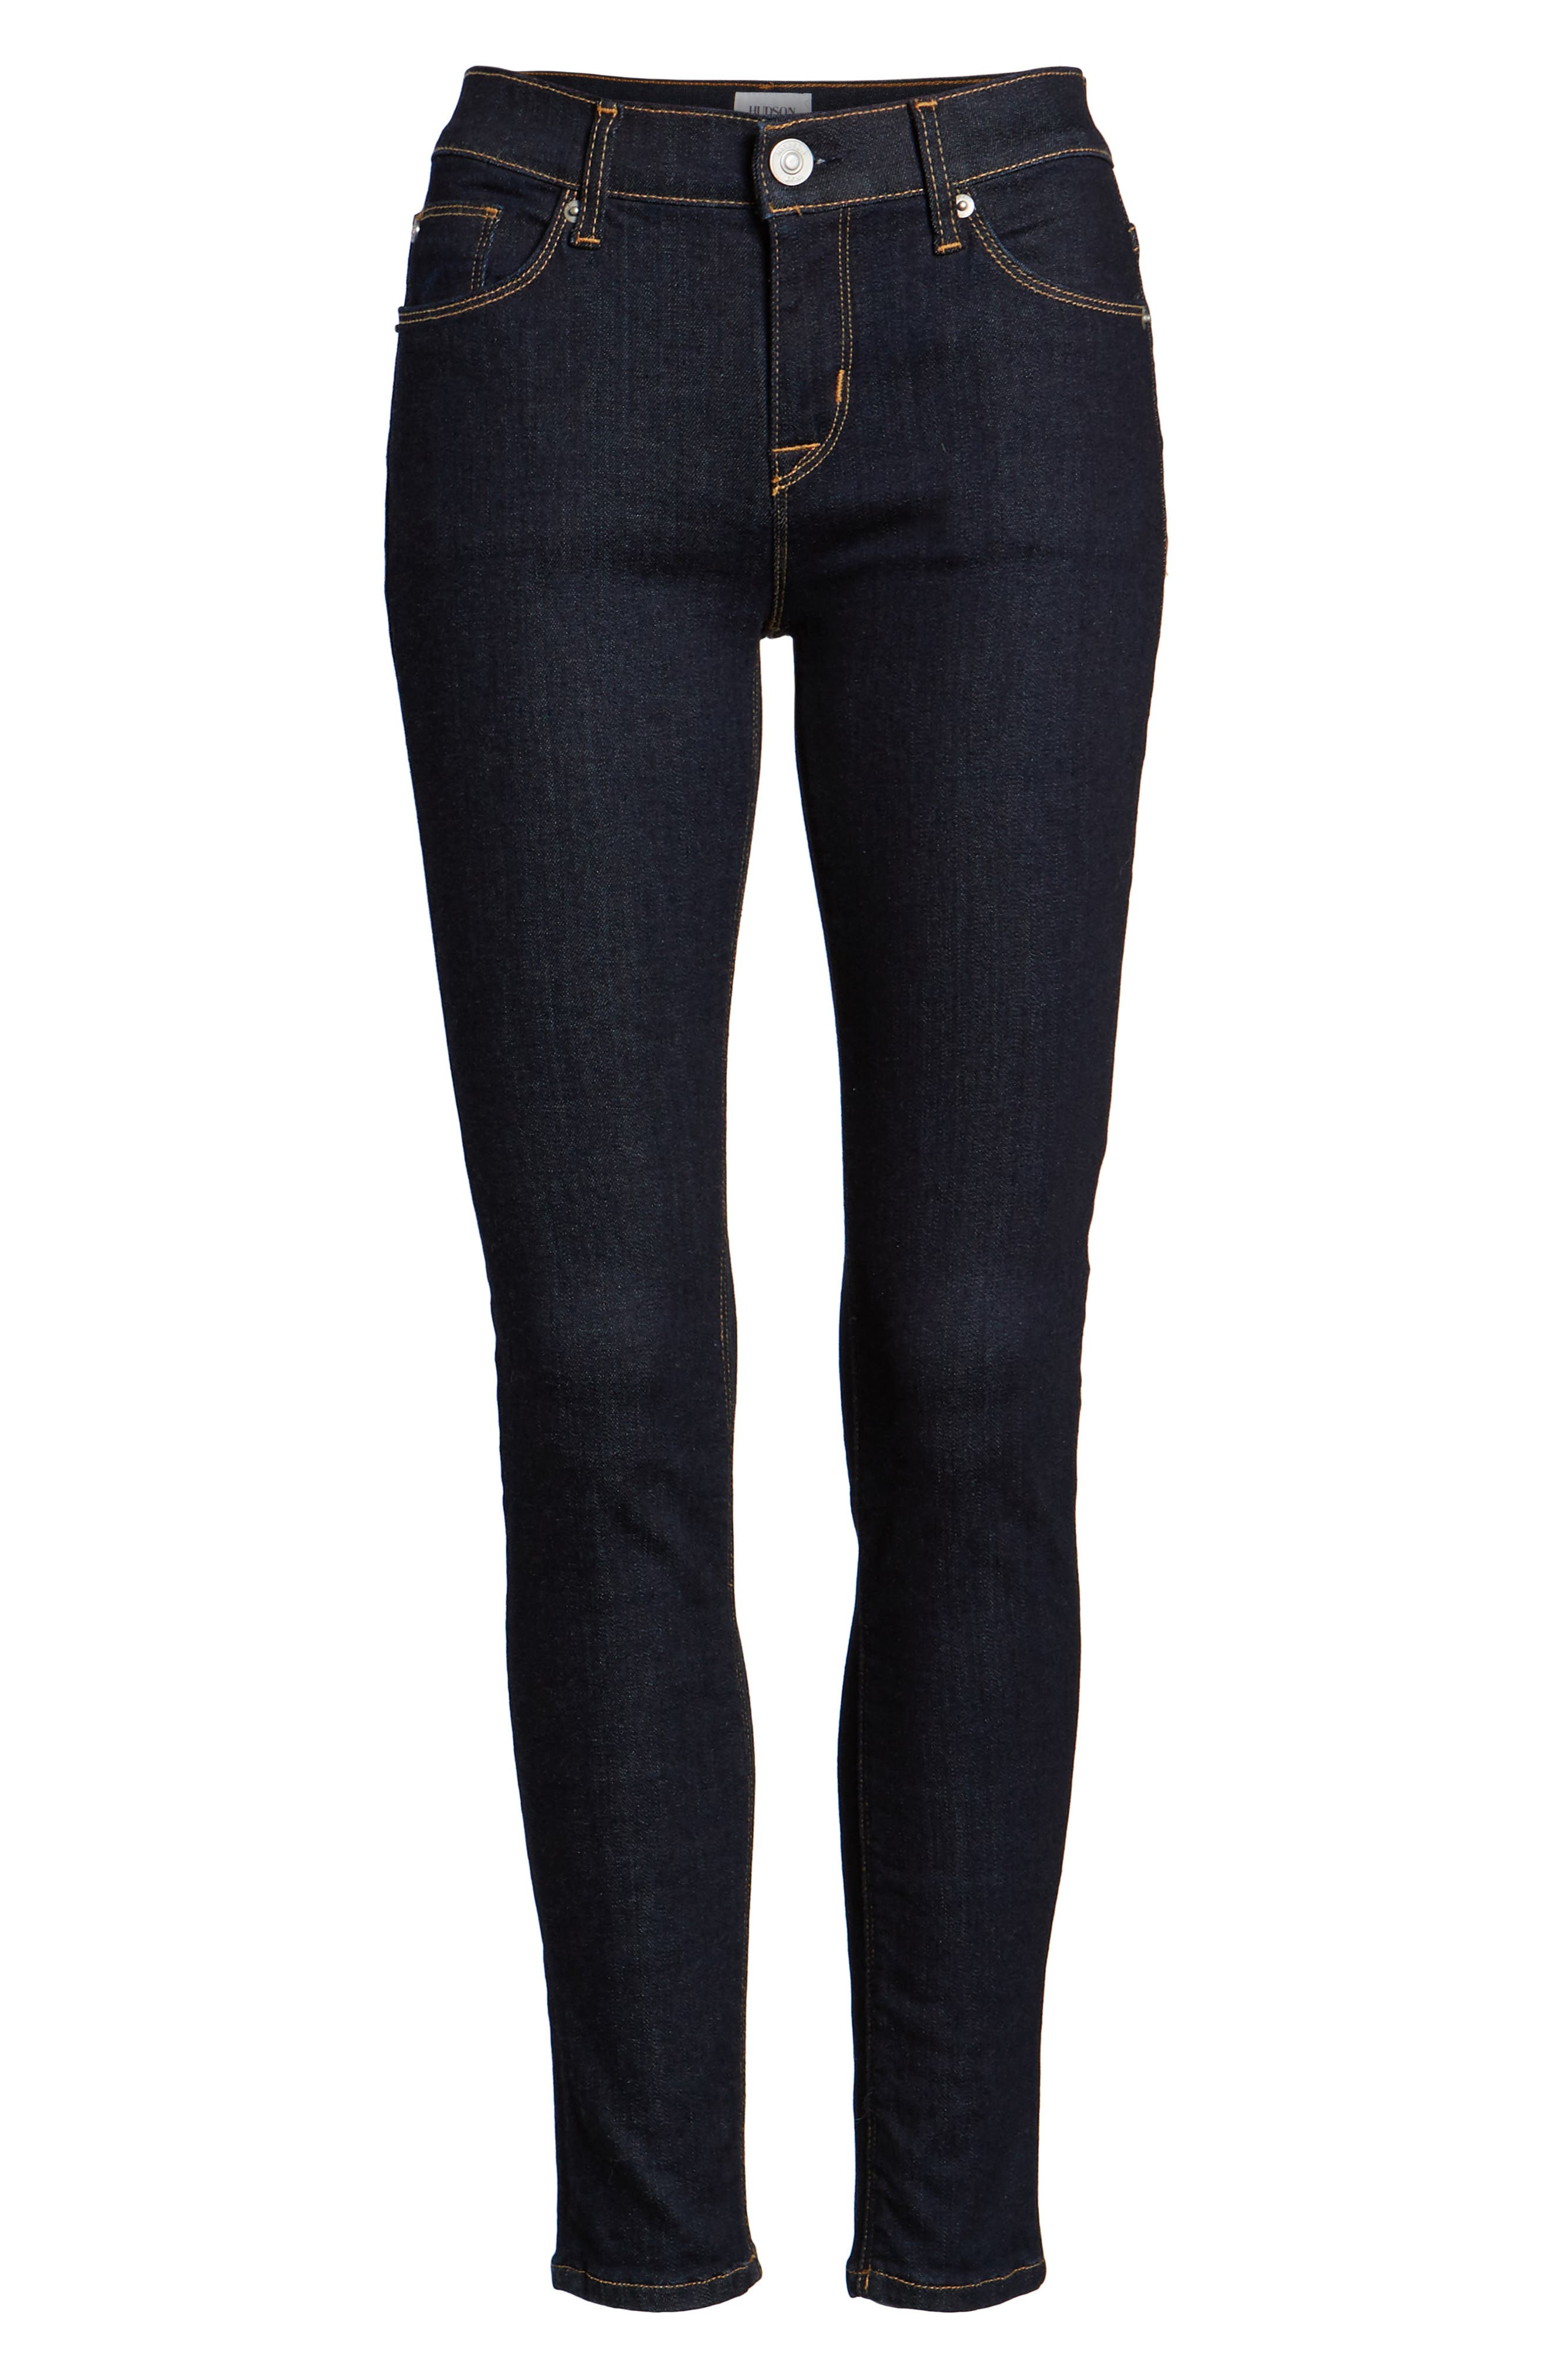 Nico Super Skinny Jeans,                             Alternate thumbnail 7, color,                             402